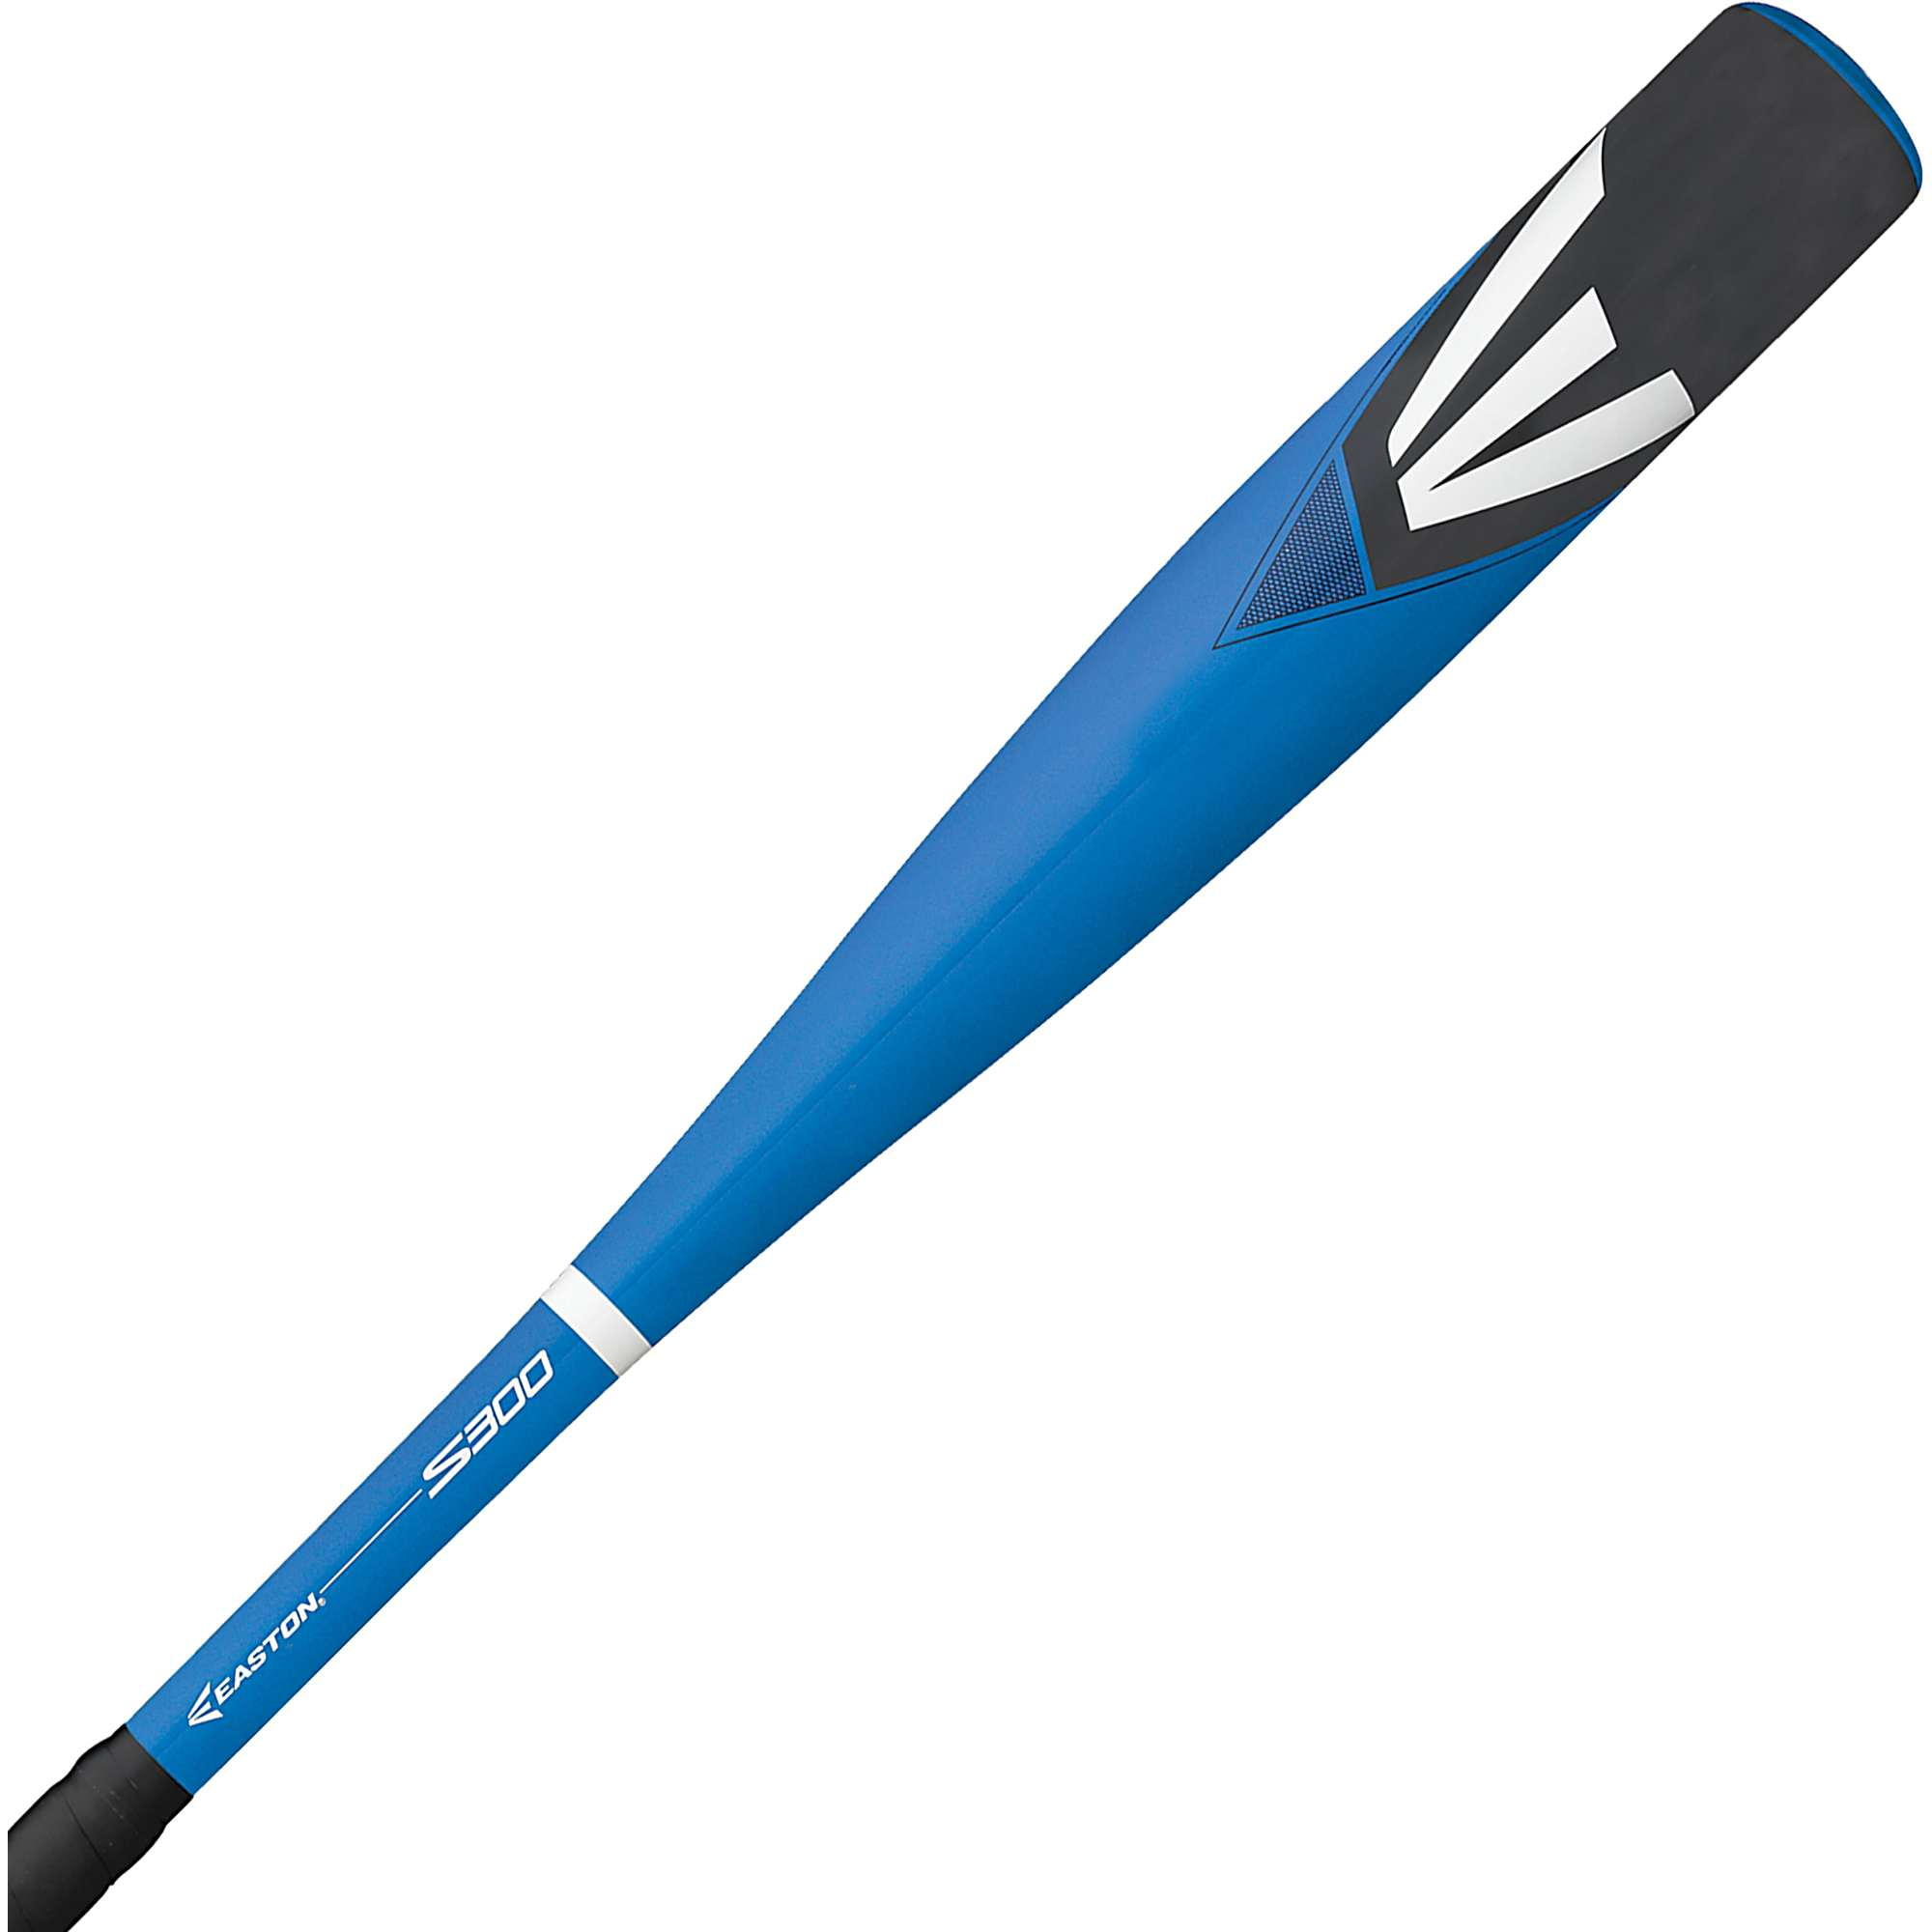 New 2015 Easton S600c Bat Review Release, Reviews and Models on